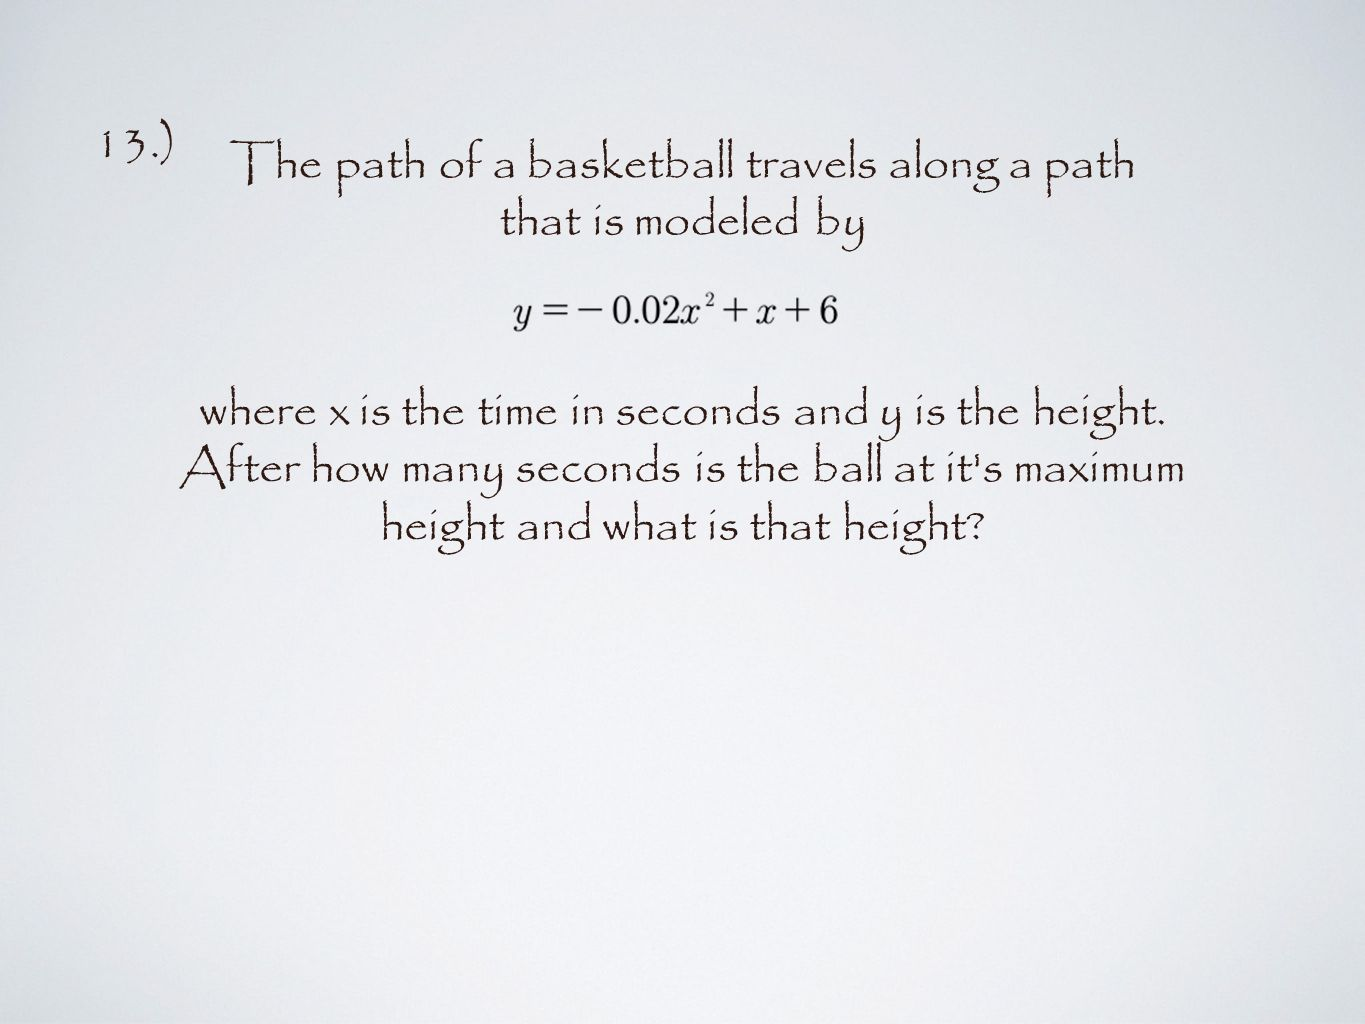 13.) The path of a basketball travels along a path that is modeled by where x is the time in seconds and y is the height.